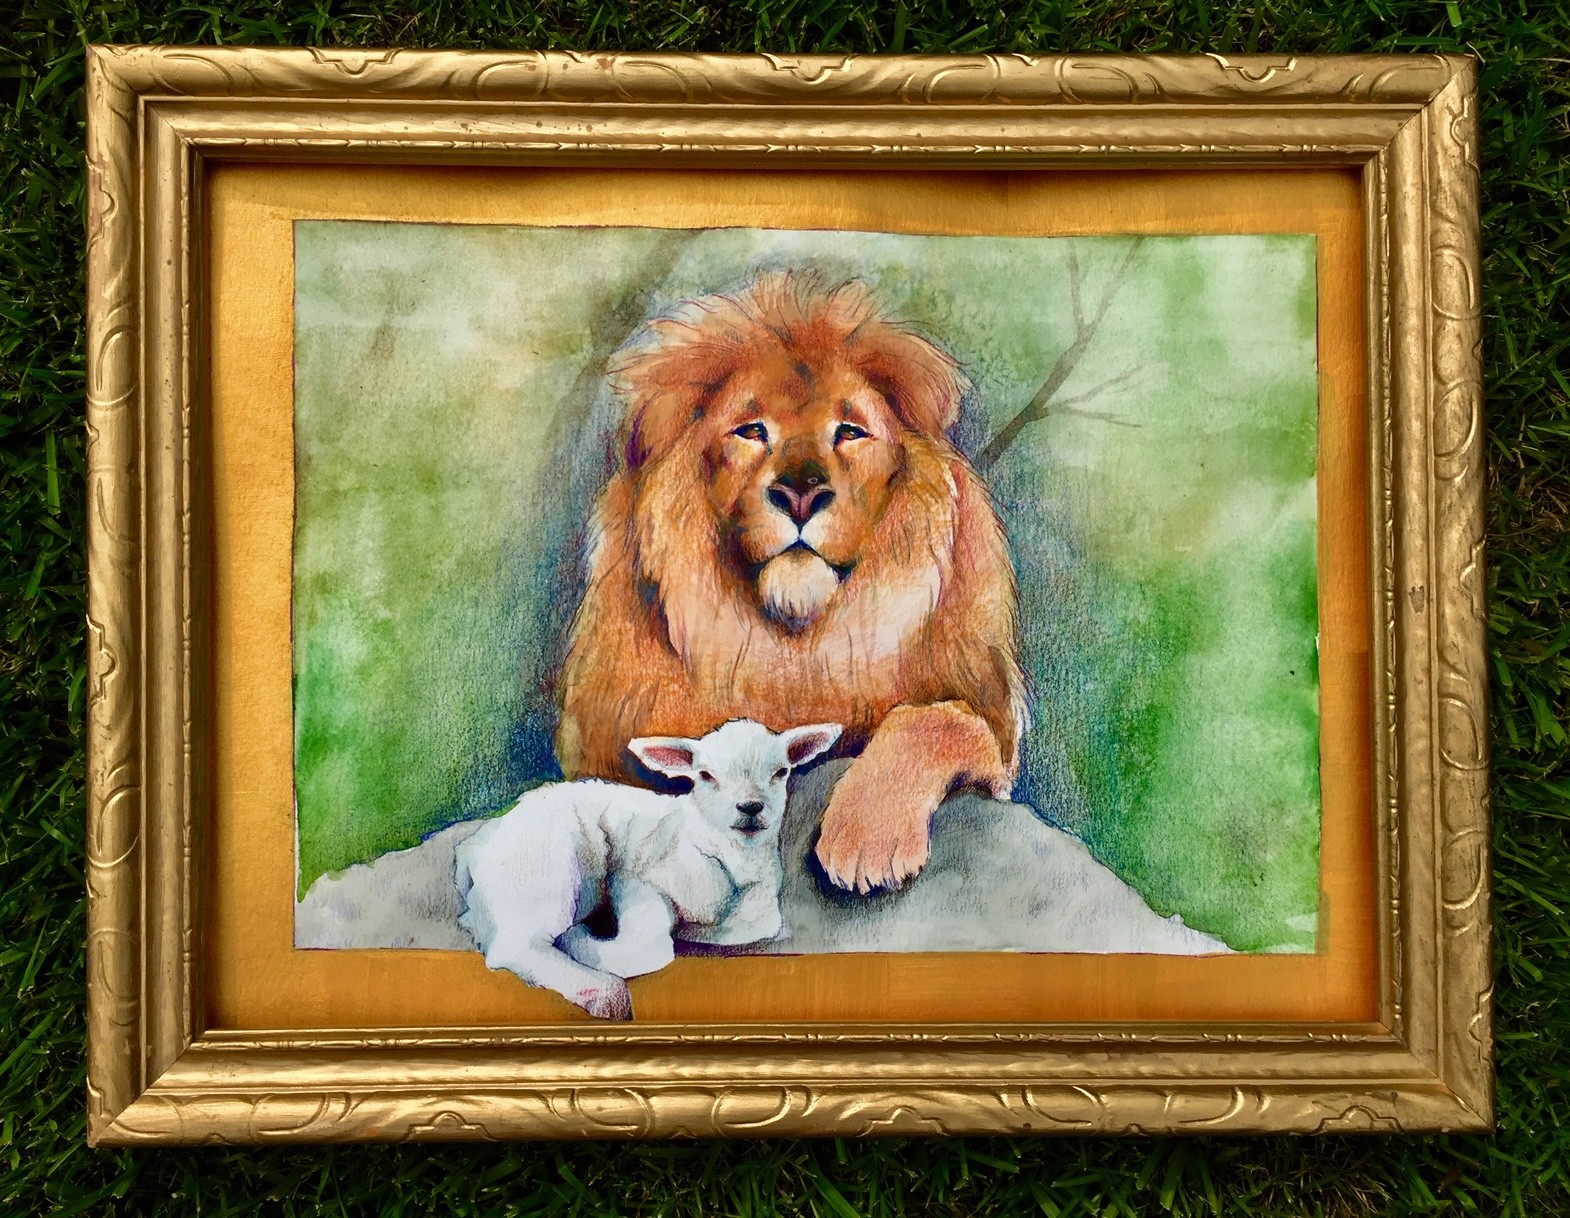 A lion and a lamb sit serenely with each other enjoying each others presence within a reign of peace.